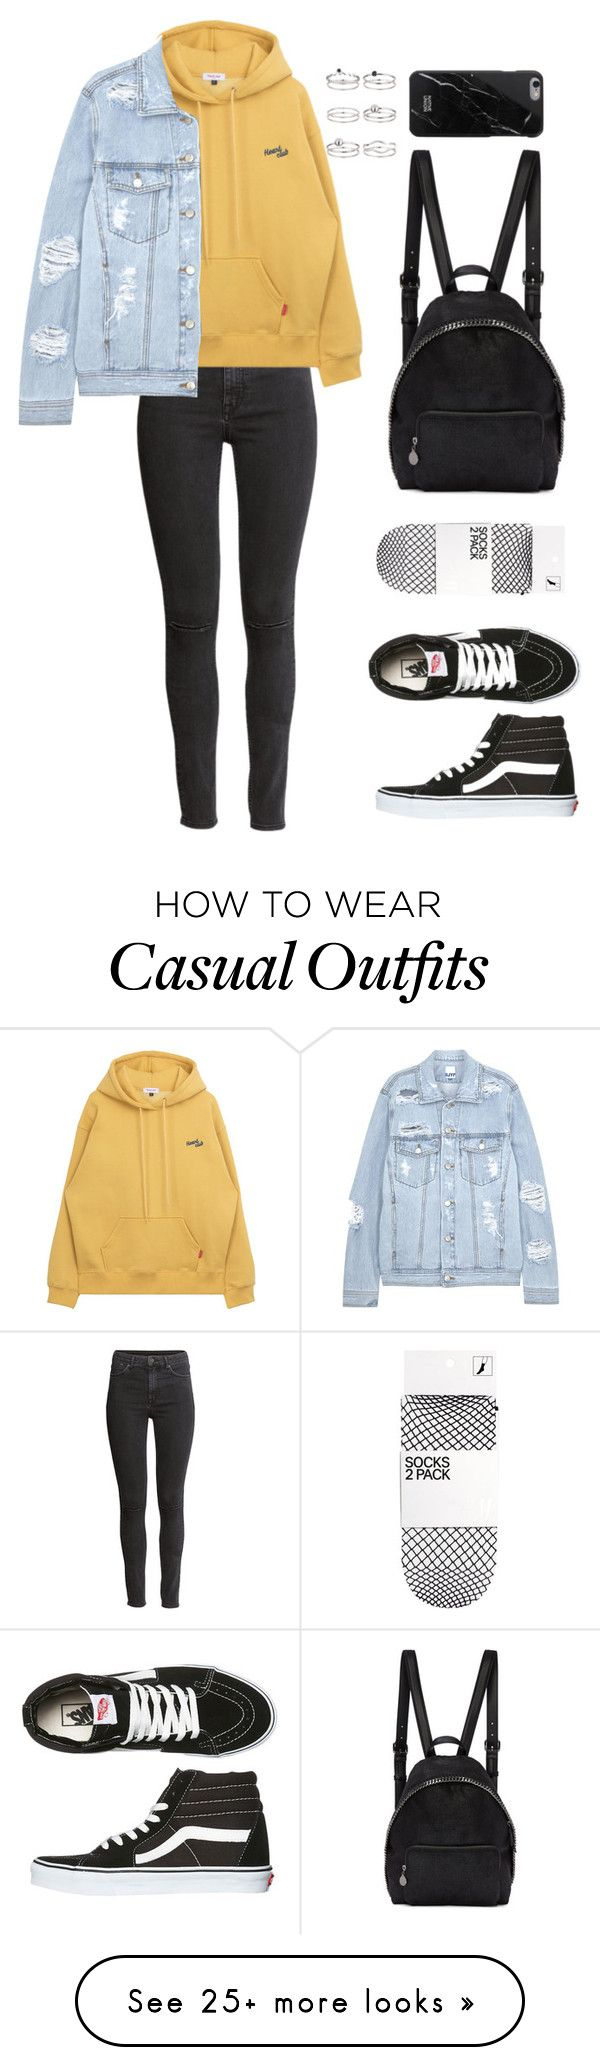 """""""Untitled #141"""" by manerefortis on Polyvore featuring H&M, SJYP, Vans, STELLA McCARTNEY, Native Union and Miss Selfridge"""